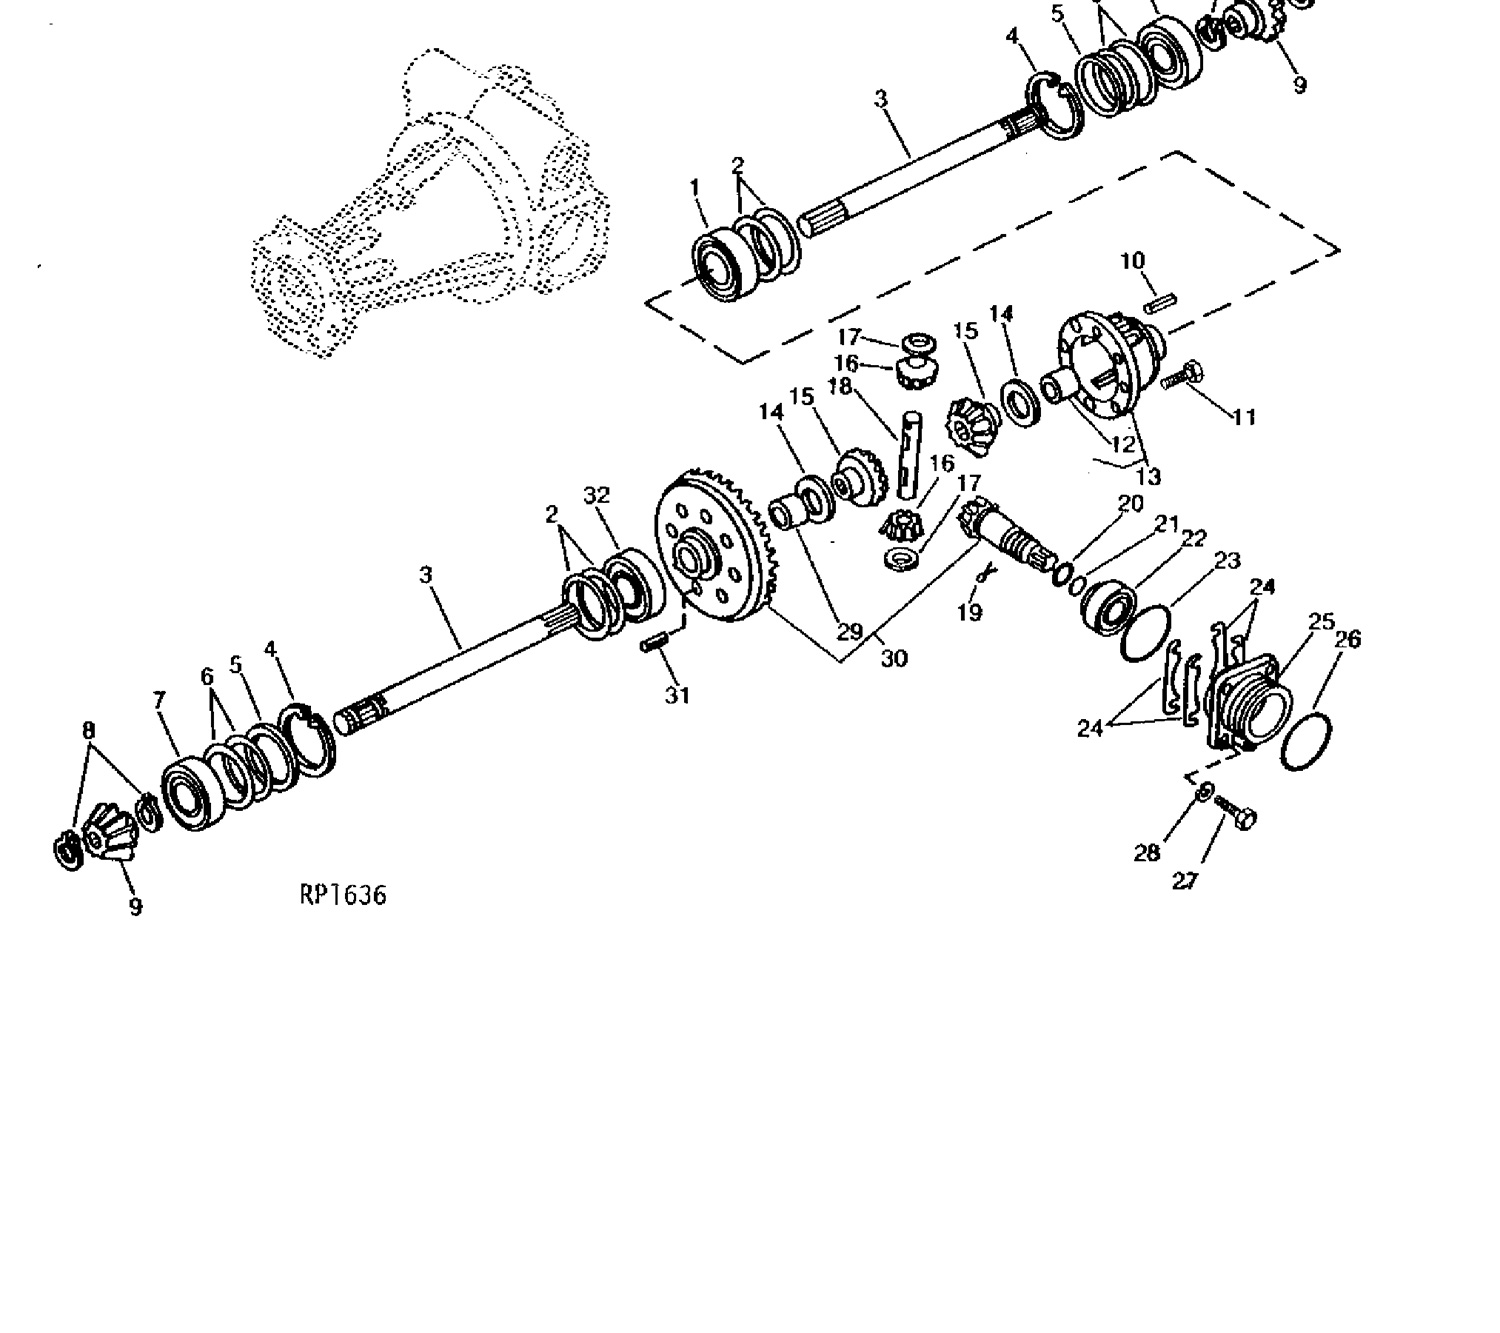 basic wiring diagram for ford 555 backhoe ford parts